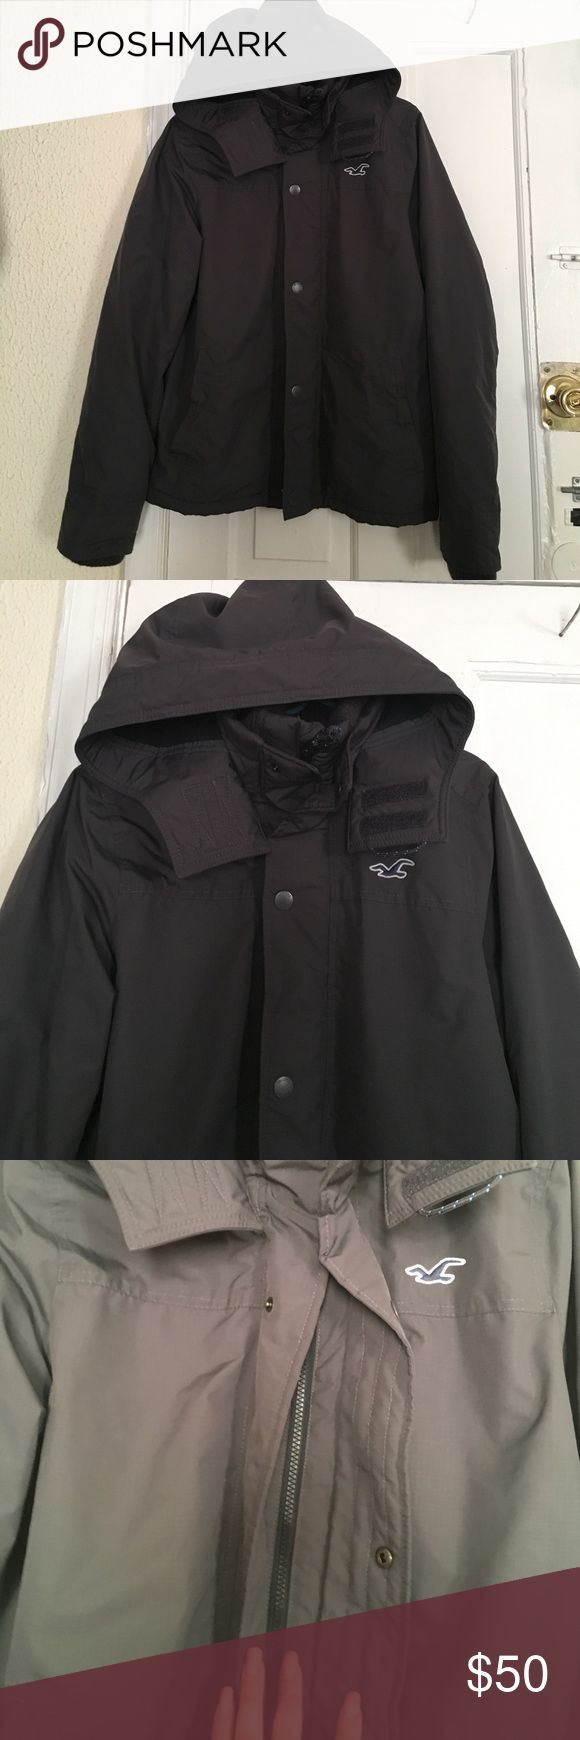 Hollister Coat Almost new. Used just a few times no stains or tears. Can be used for boys or slim men. In great condition. Hoodie doesn't remove. Great all weather coat Hollister Jackets & Coats